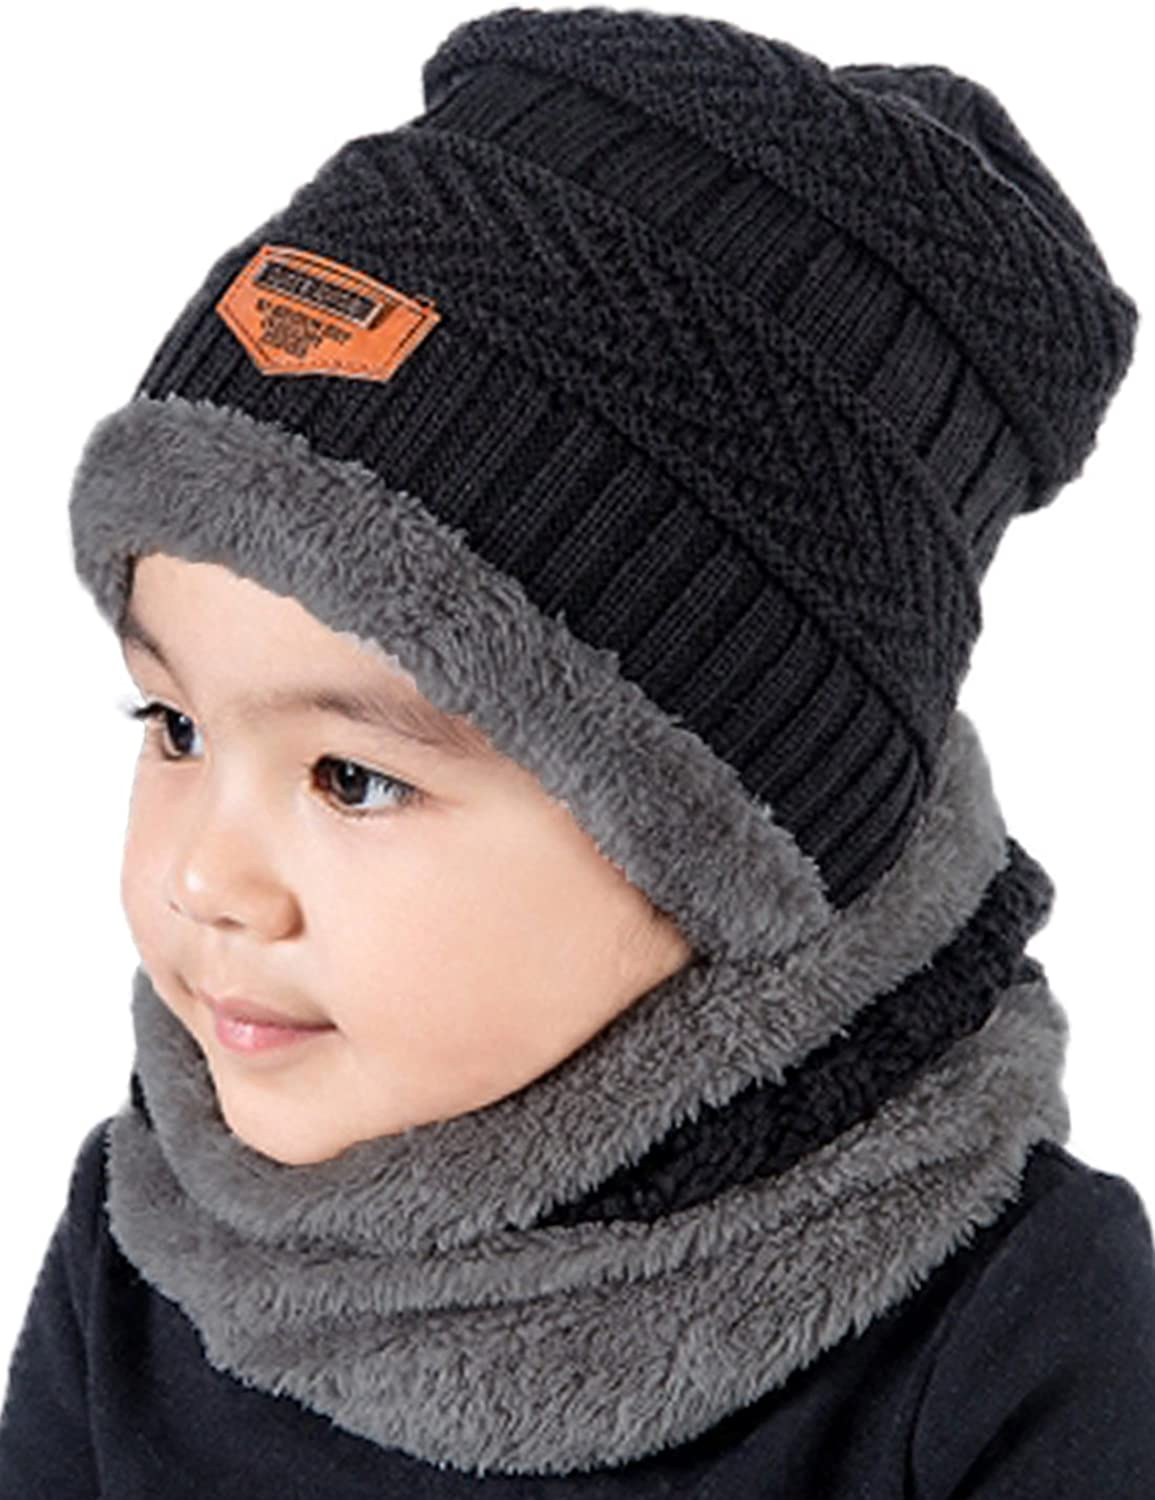 T WILKER 2Pcs Kids Winter Knitted Hats+Scarf Set Warm Fleece...